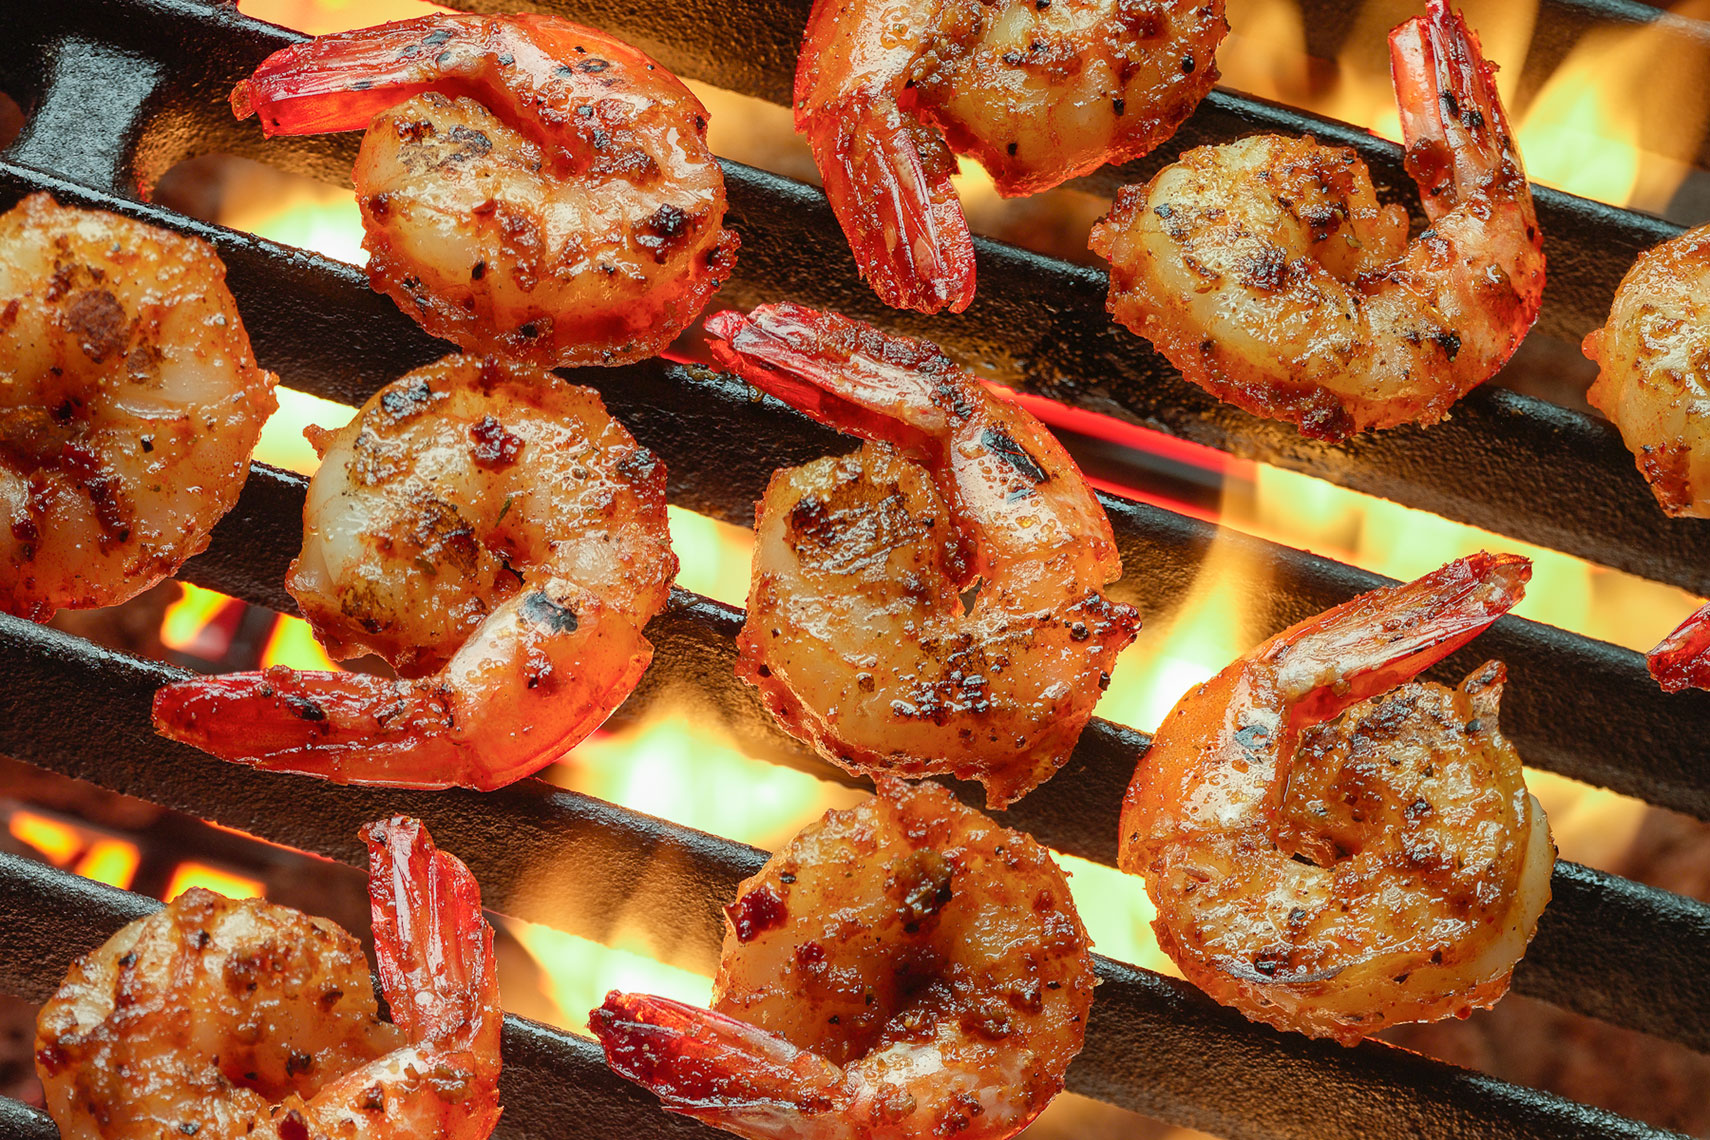 Grilled Shrimp food photo